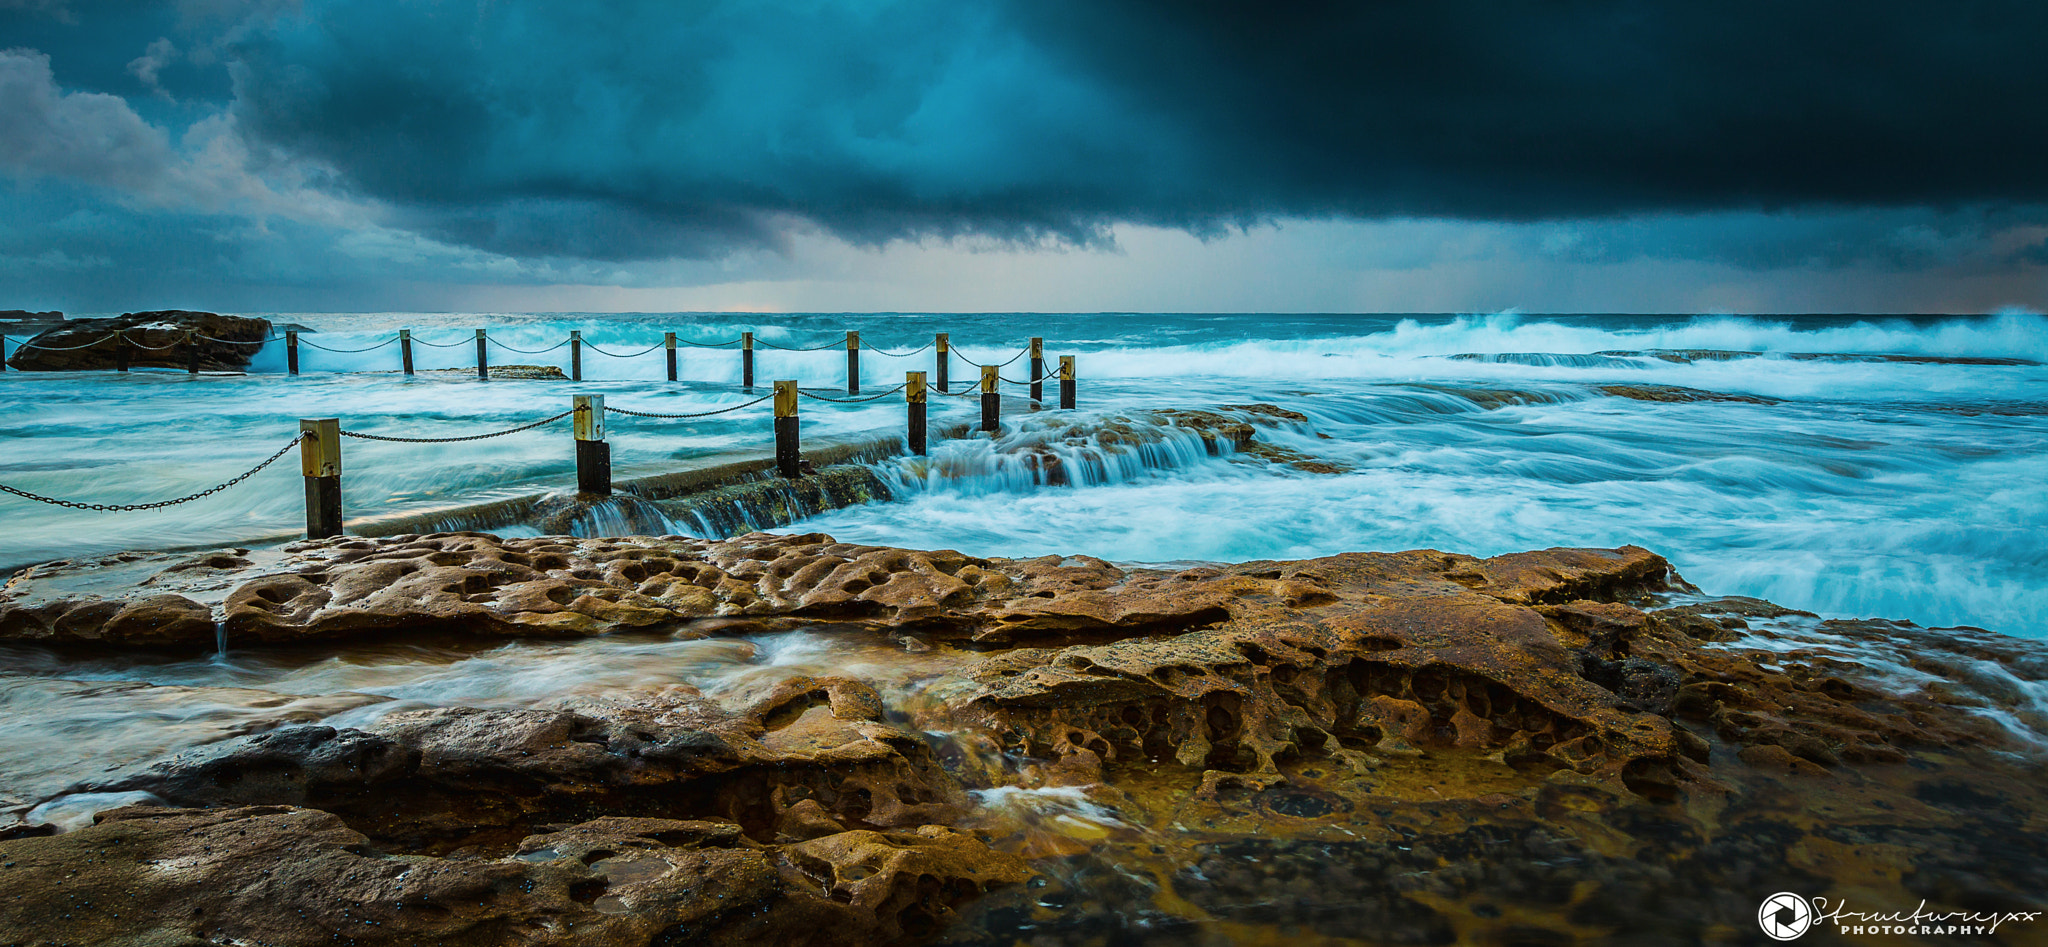 Photograph Maroubra rock pool by Structuresxx  on 500px